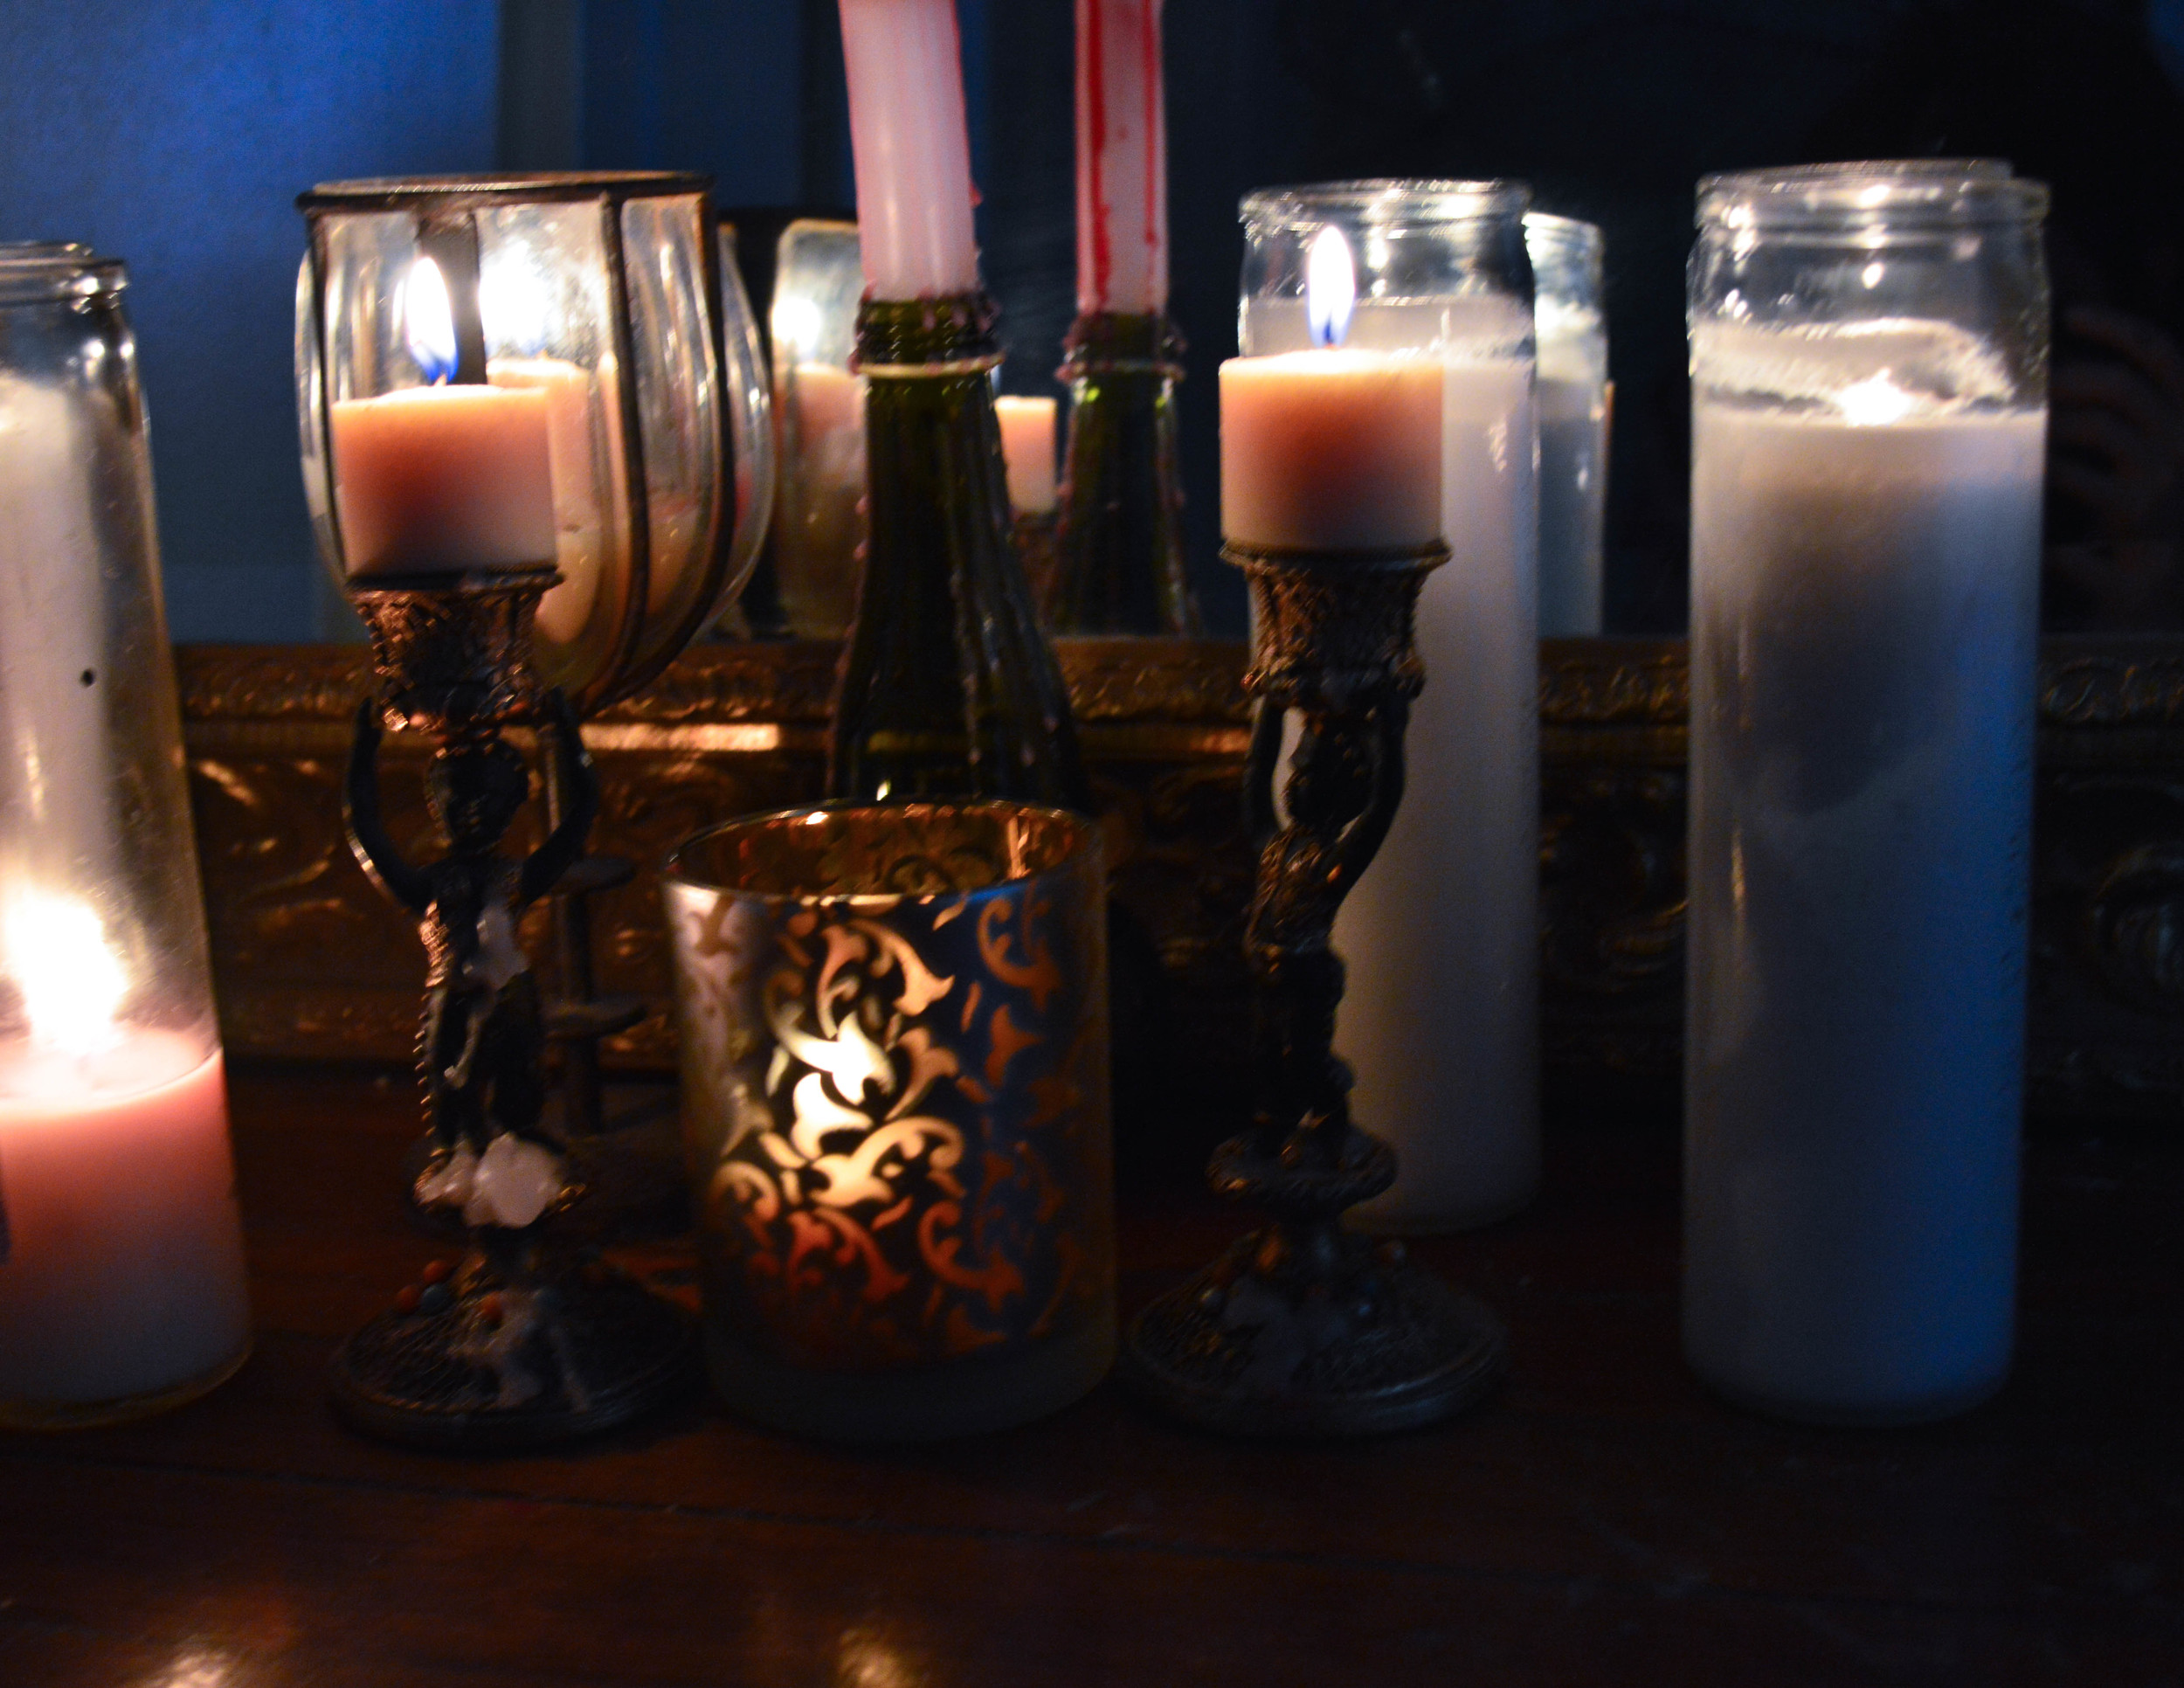 Candles against a mirror, A classic. Extra points for creating a floor vignette.